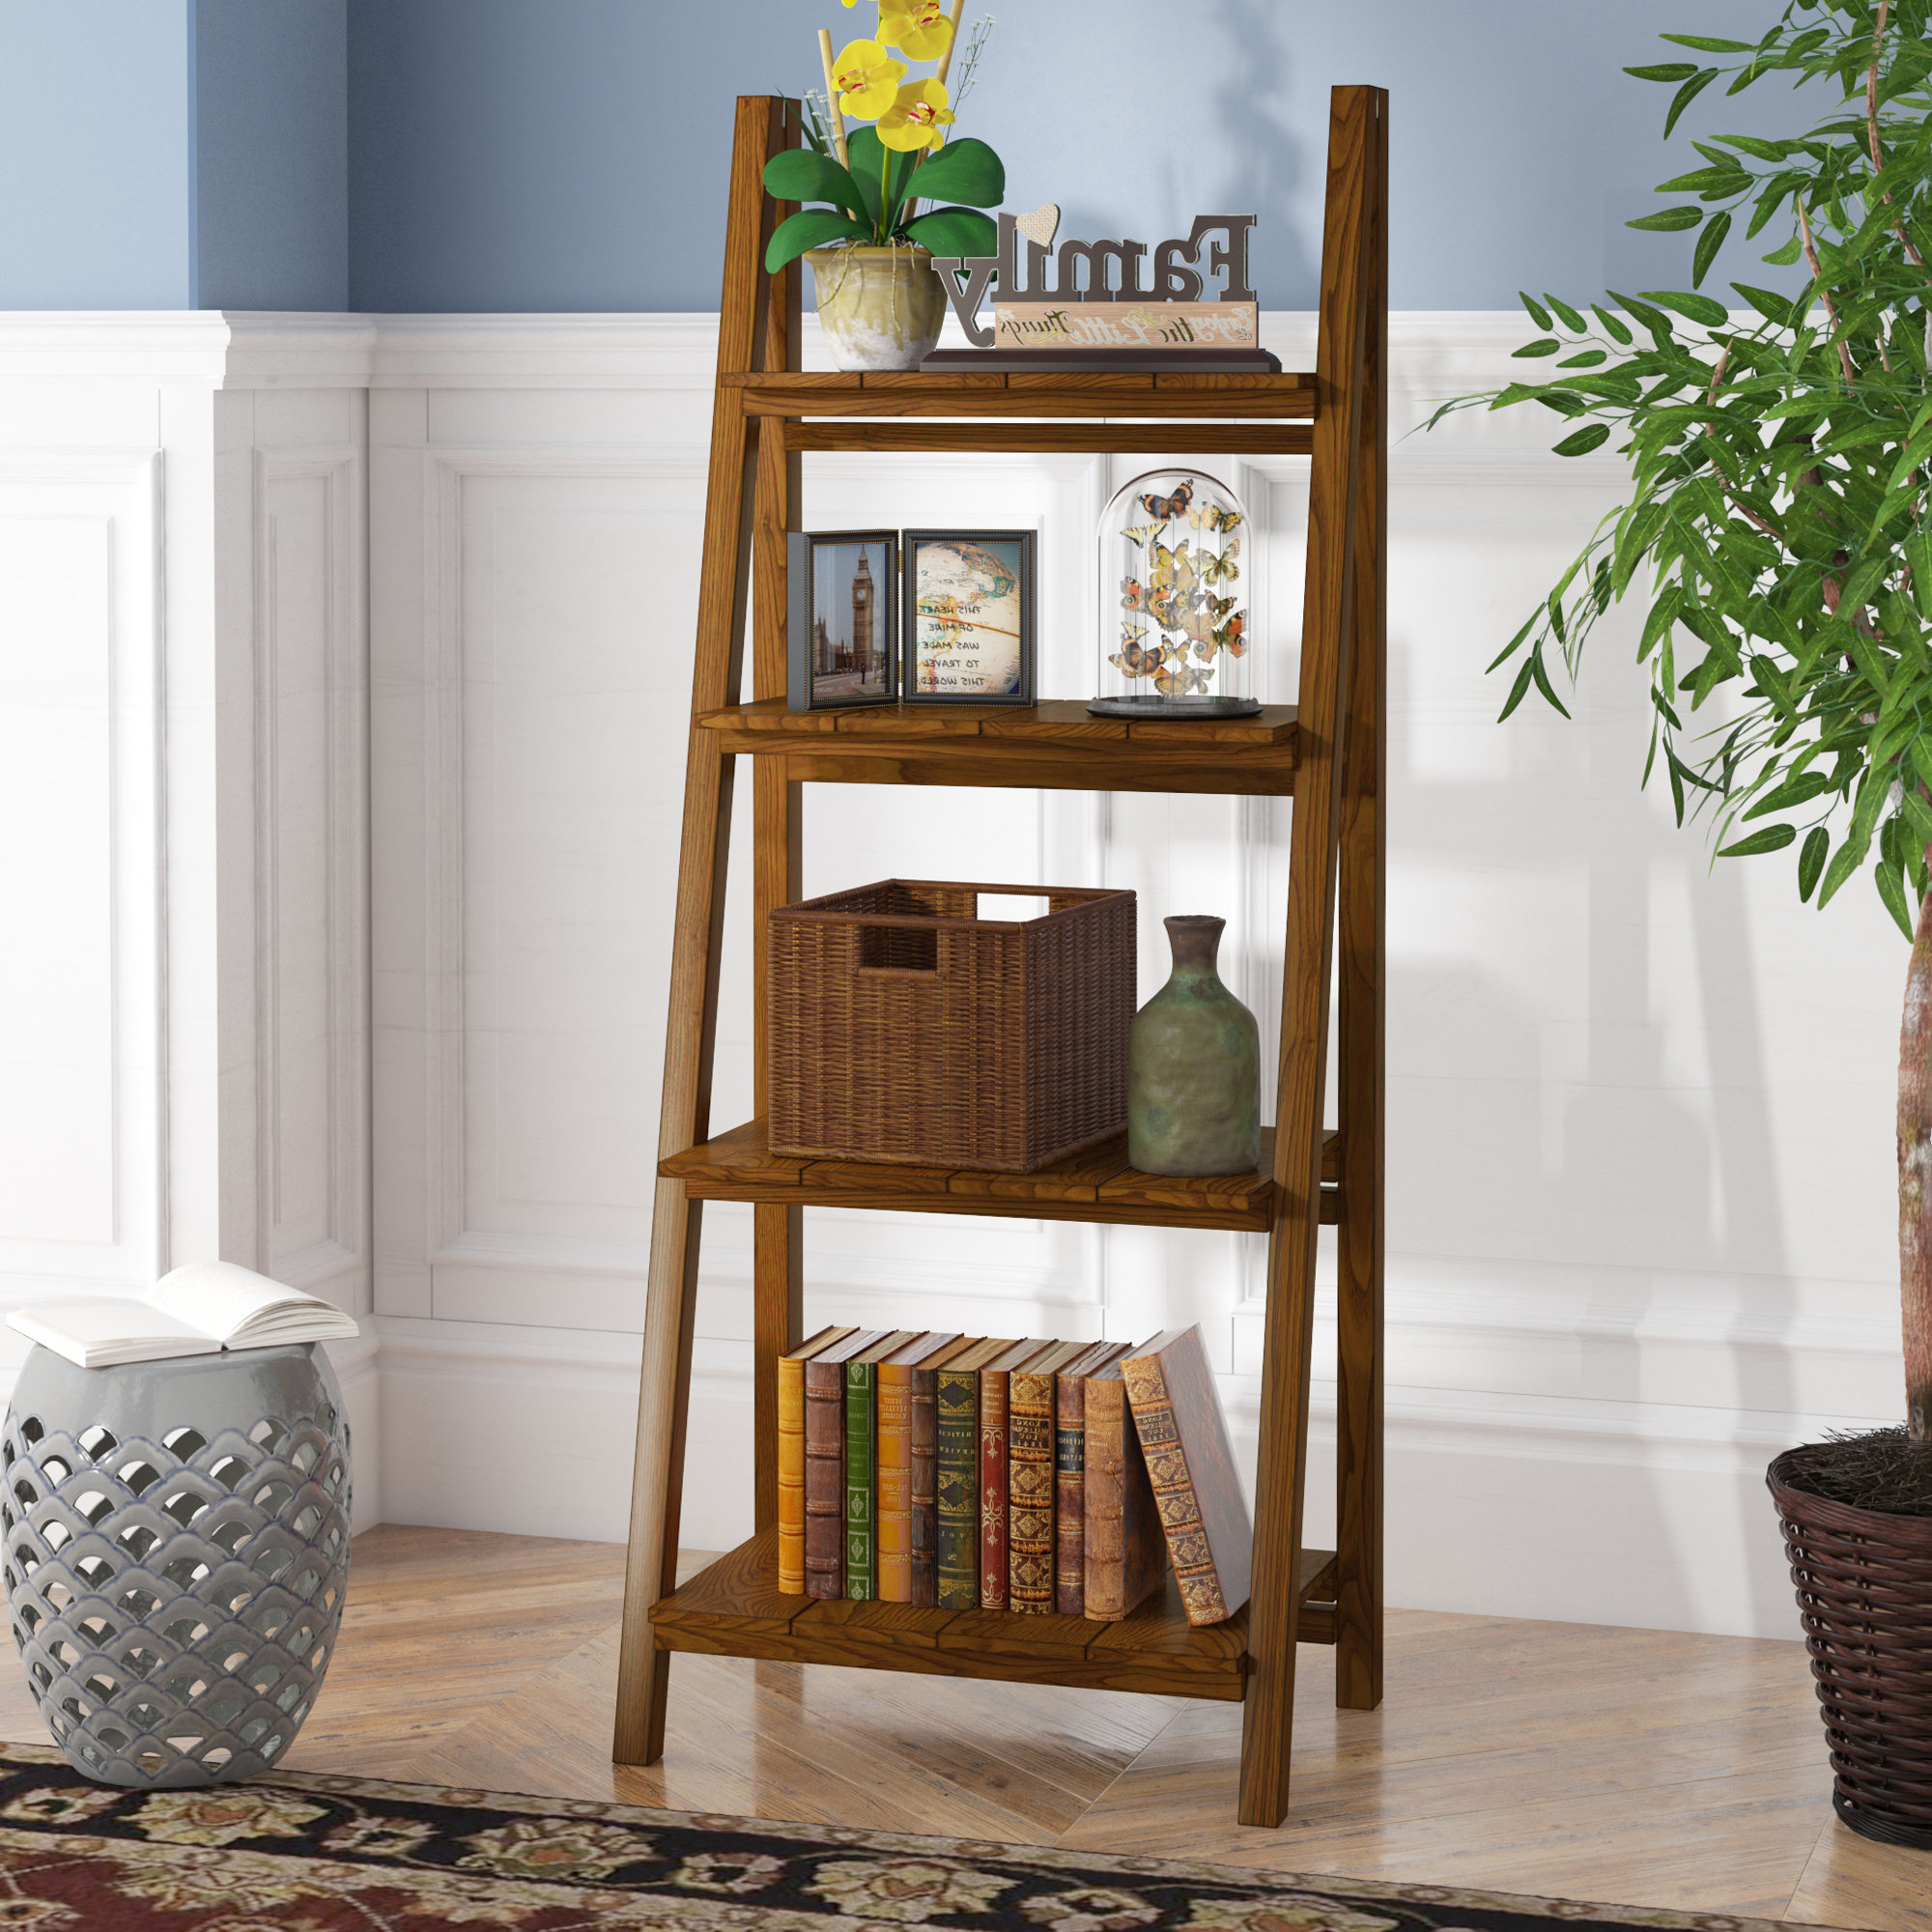 2019 Brock Ladder Bookcases Intended For Bordelon Slatted Ladder Bookcase (View 10 of 20)